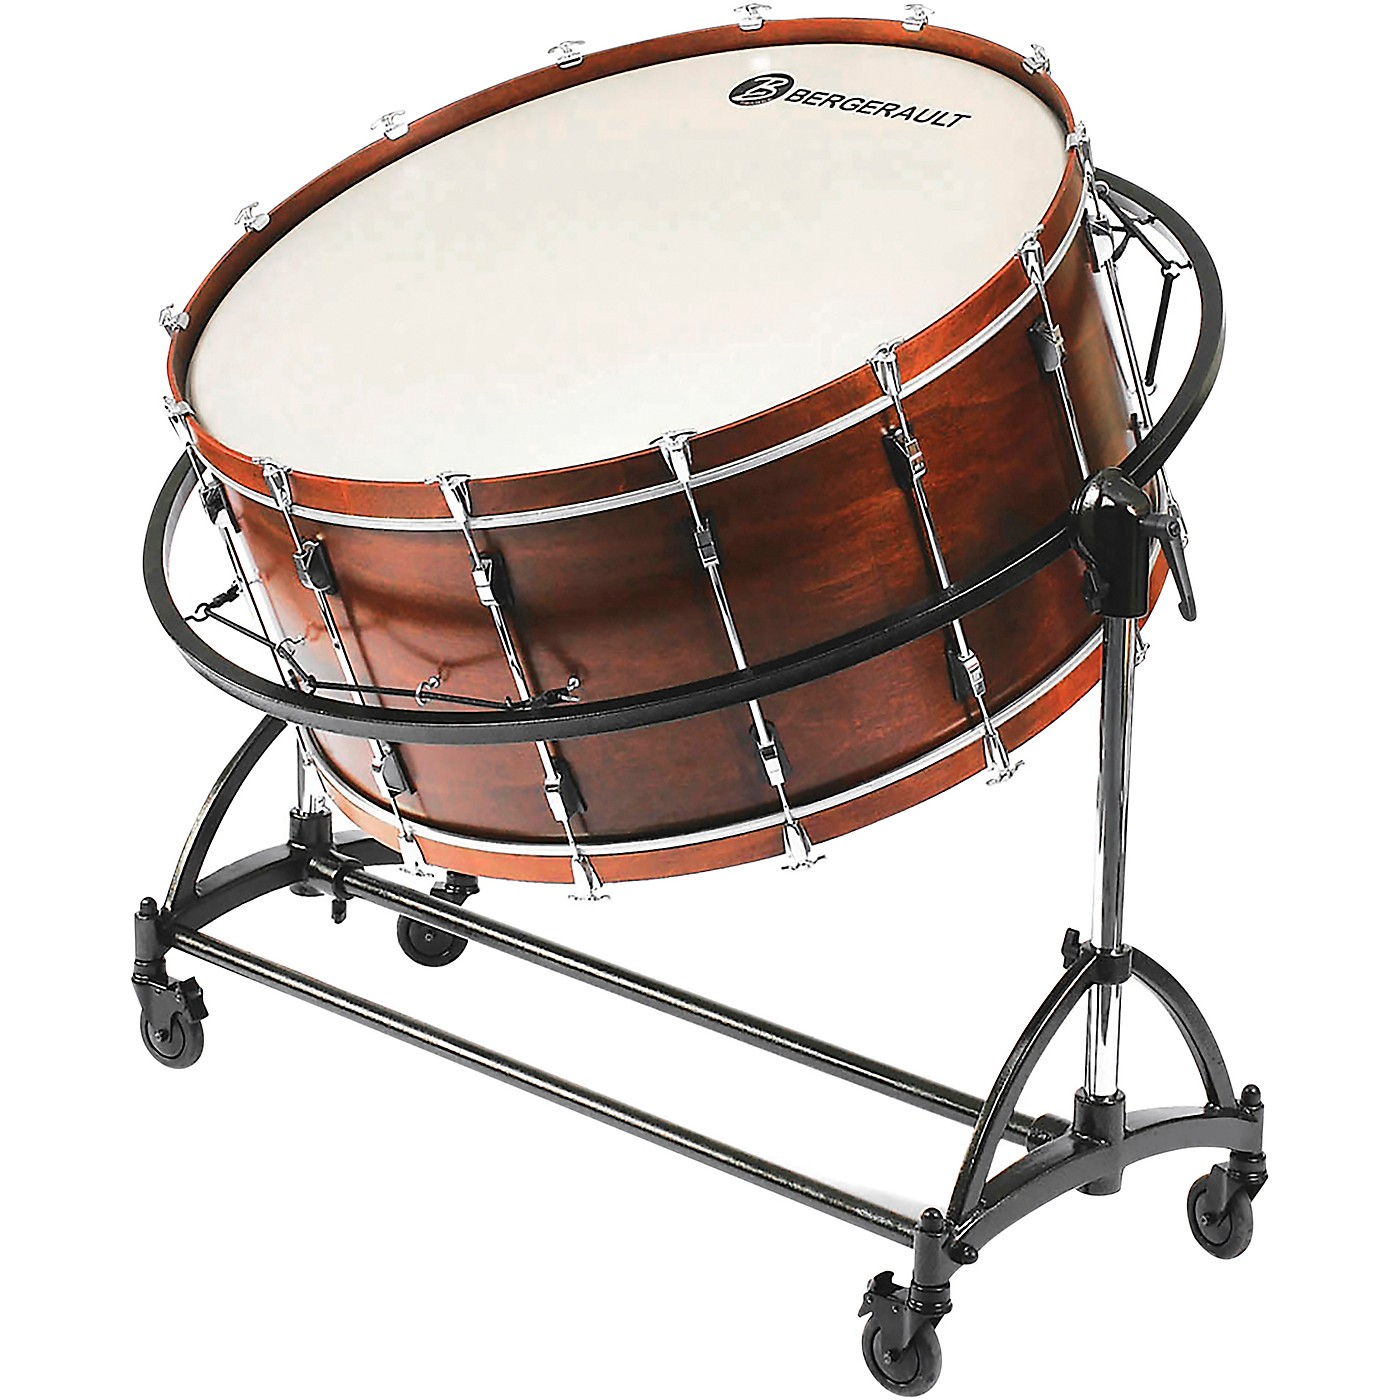 """Bergerault Symphonic Series Bass Drum, 36x22"""" With Suspension Stand thumbnail"""